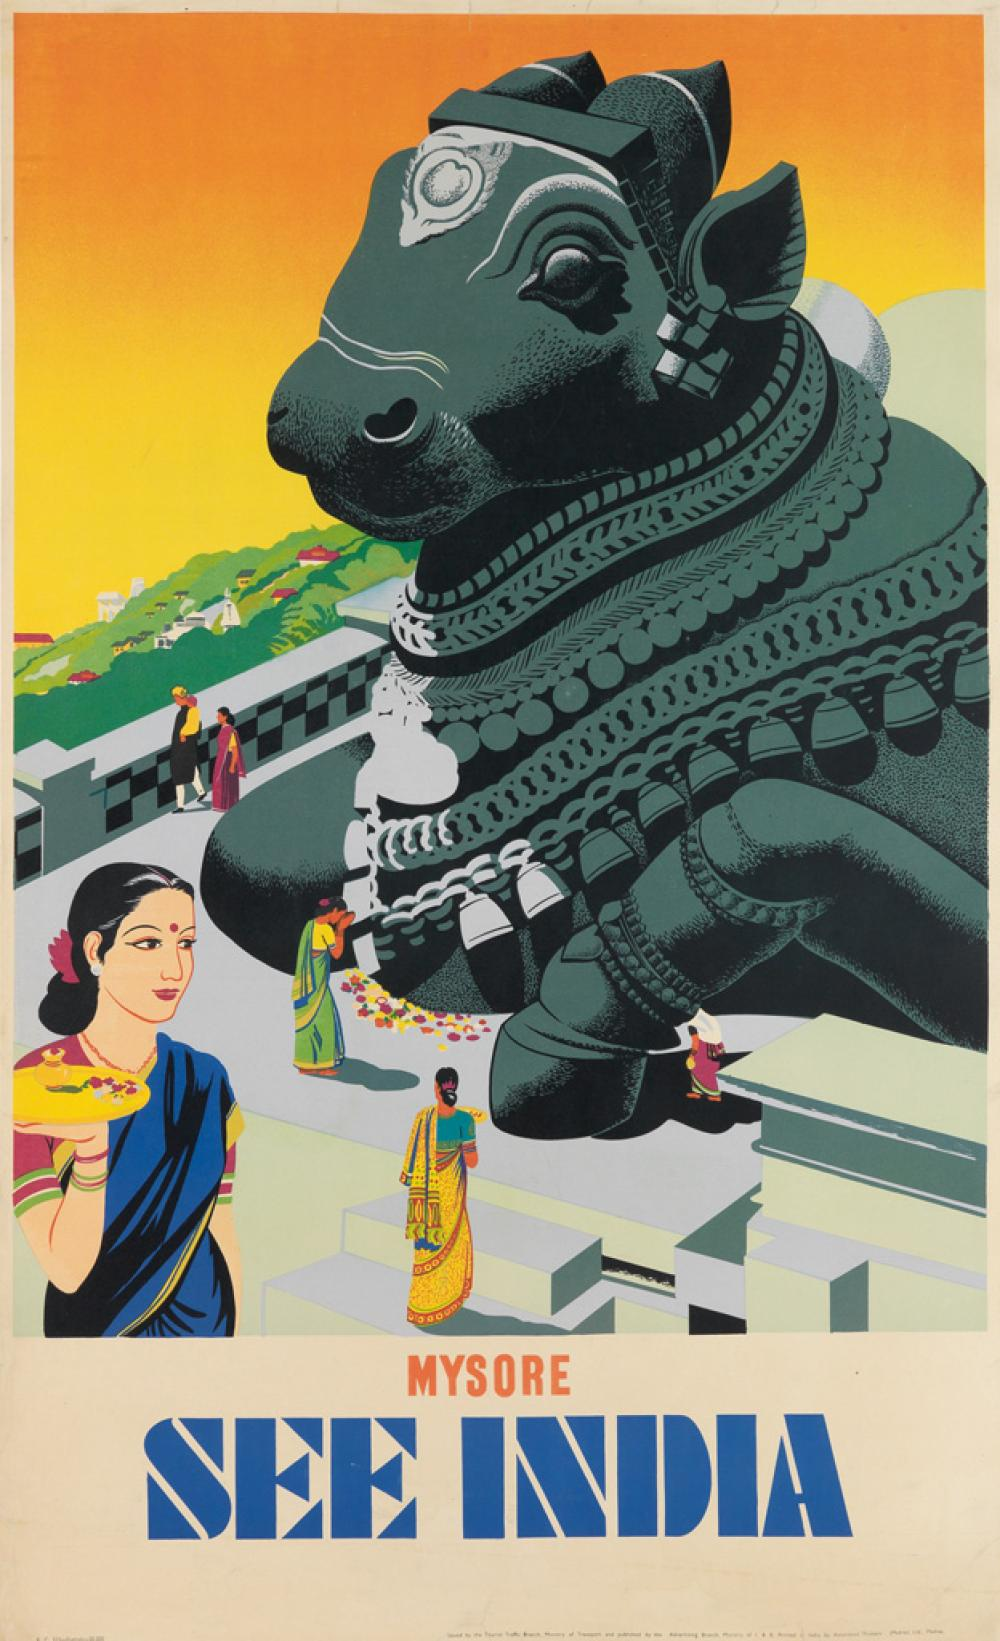 DESIGNER UNKNOWN. SEE INDIA / MYSORE. Circa 1950s. 40x24 inches, 101x61 cm. Associated Printers, Madras.